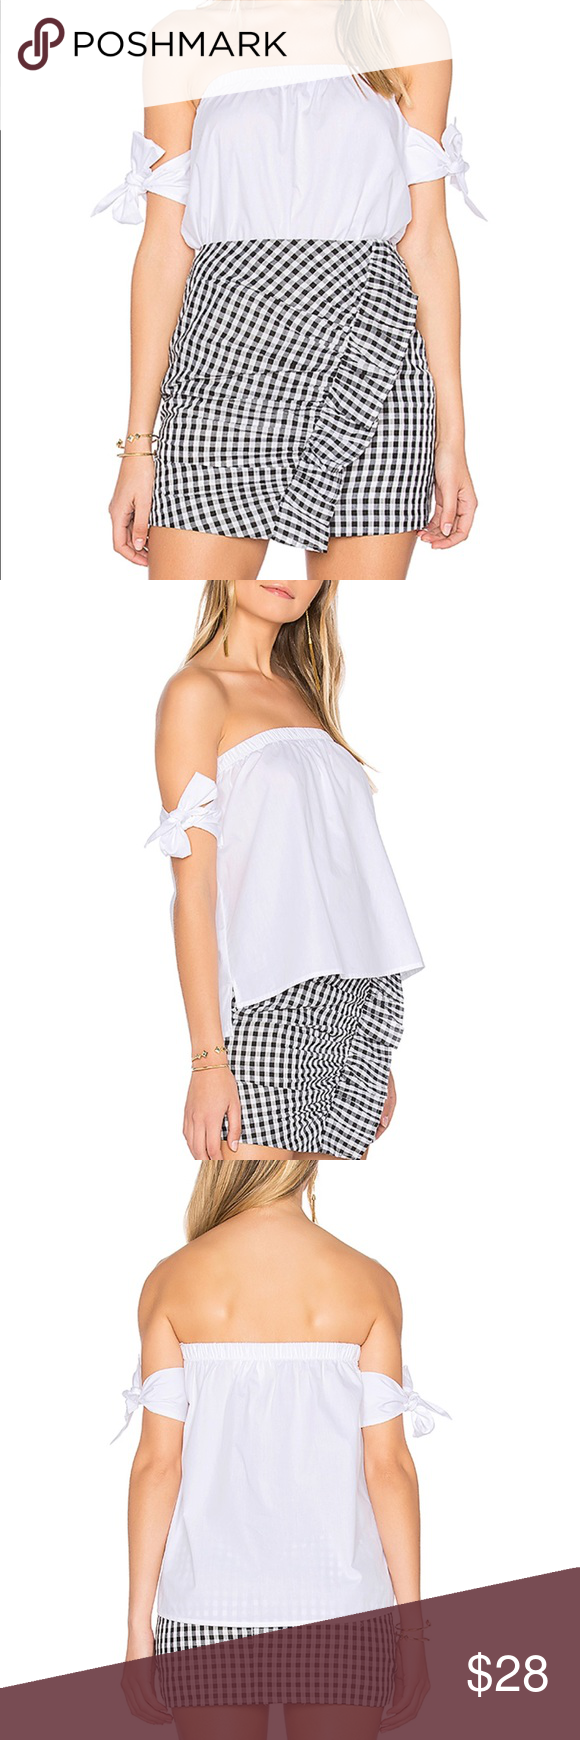 5cbeec6e92e9 JOA Off The Shoulder Knot Tie Sleeve Top 100% cotton Hand wash cold  Elasticized neckline Shoulder tie straps From Revolve Brand new never worn  and still has ...